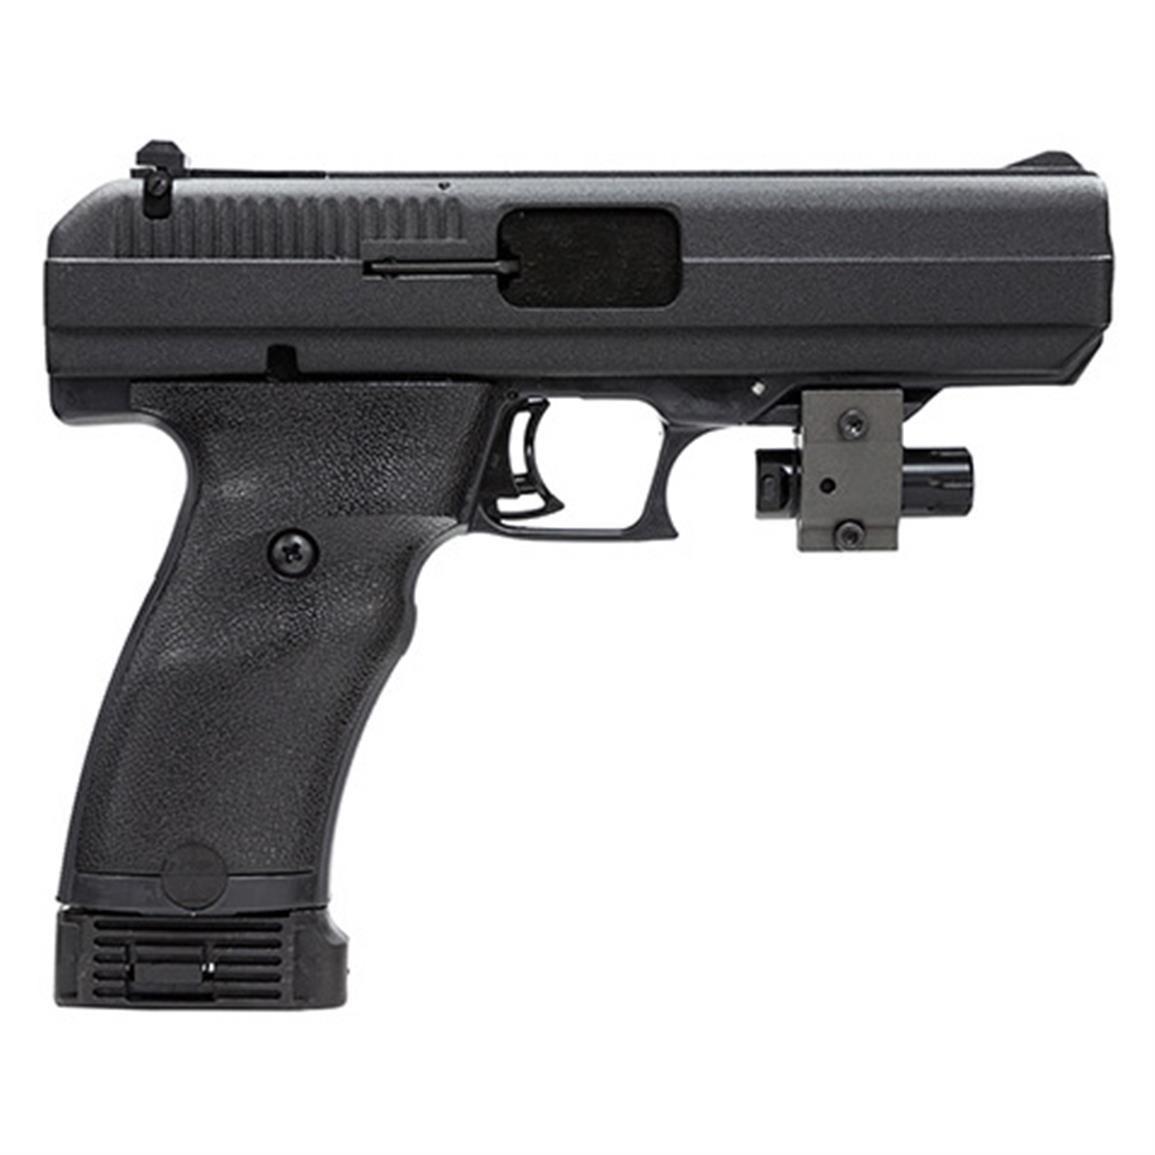 Hi-Point 40SW-B, Semi-automatic, .40 Smith & Wesson, 34011L, 752334340115, 4.5 inch Barrel Laser Sight,  10-round